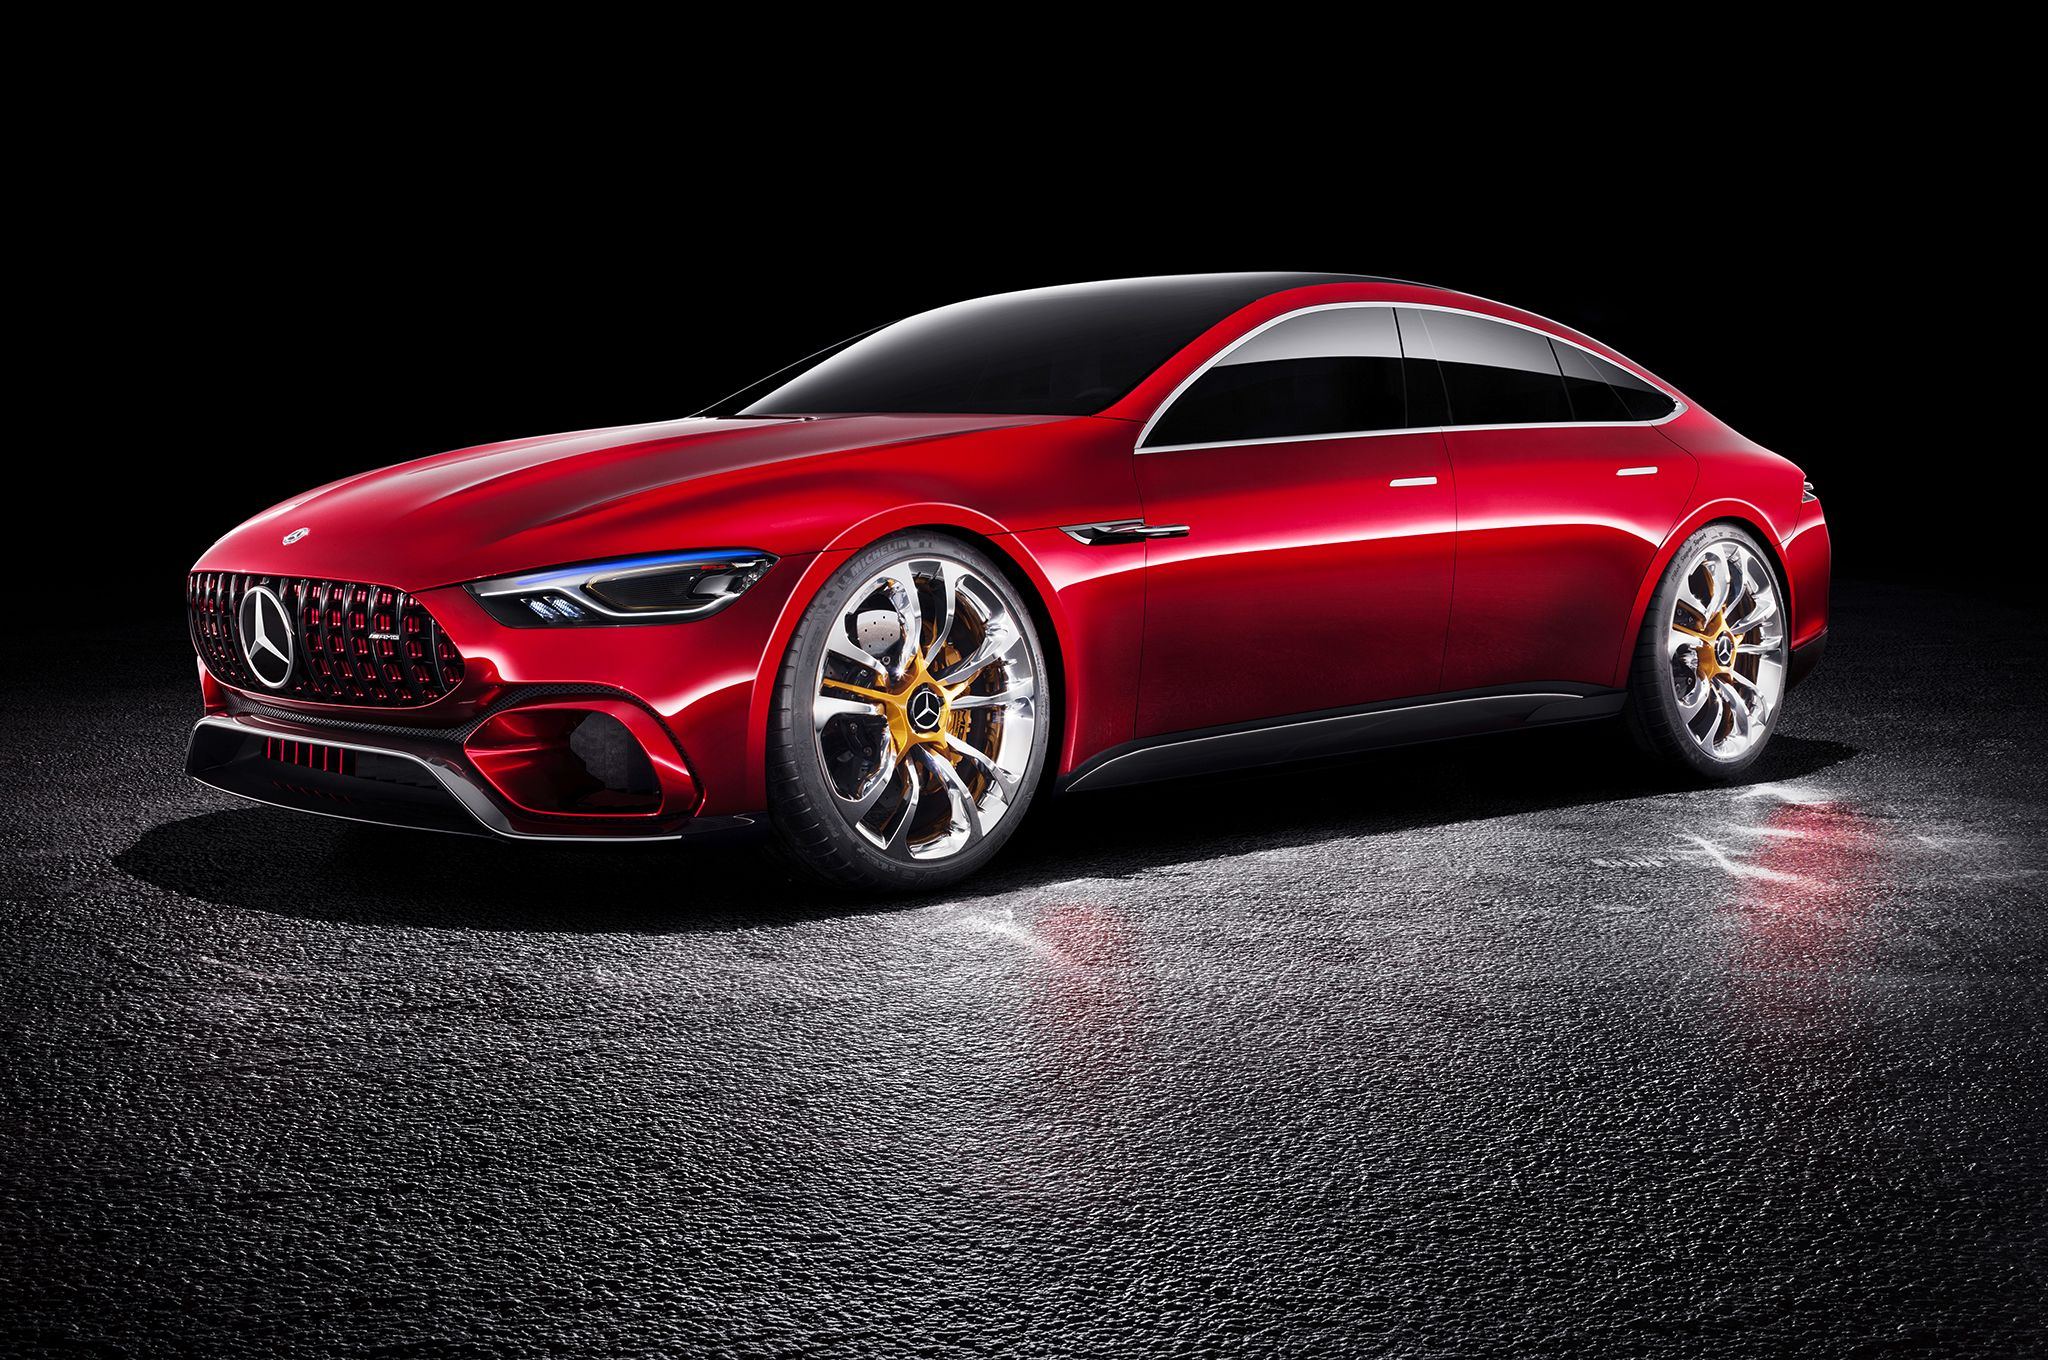 Mercedes Amg Gt Concept First Look Review Mercedes Benz Amg